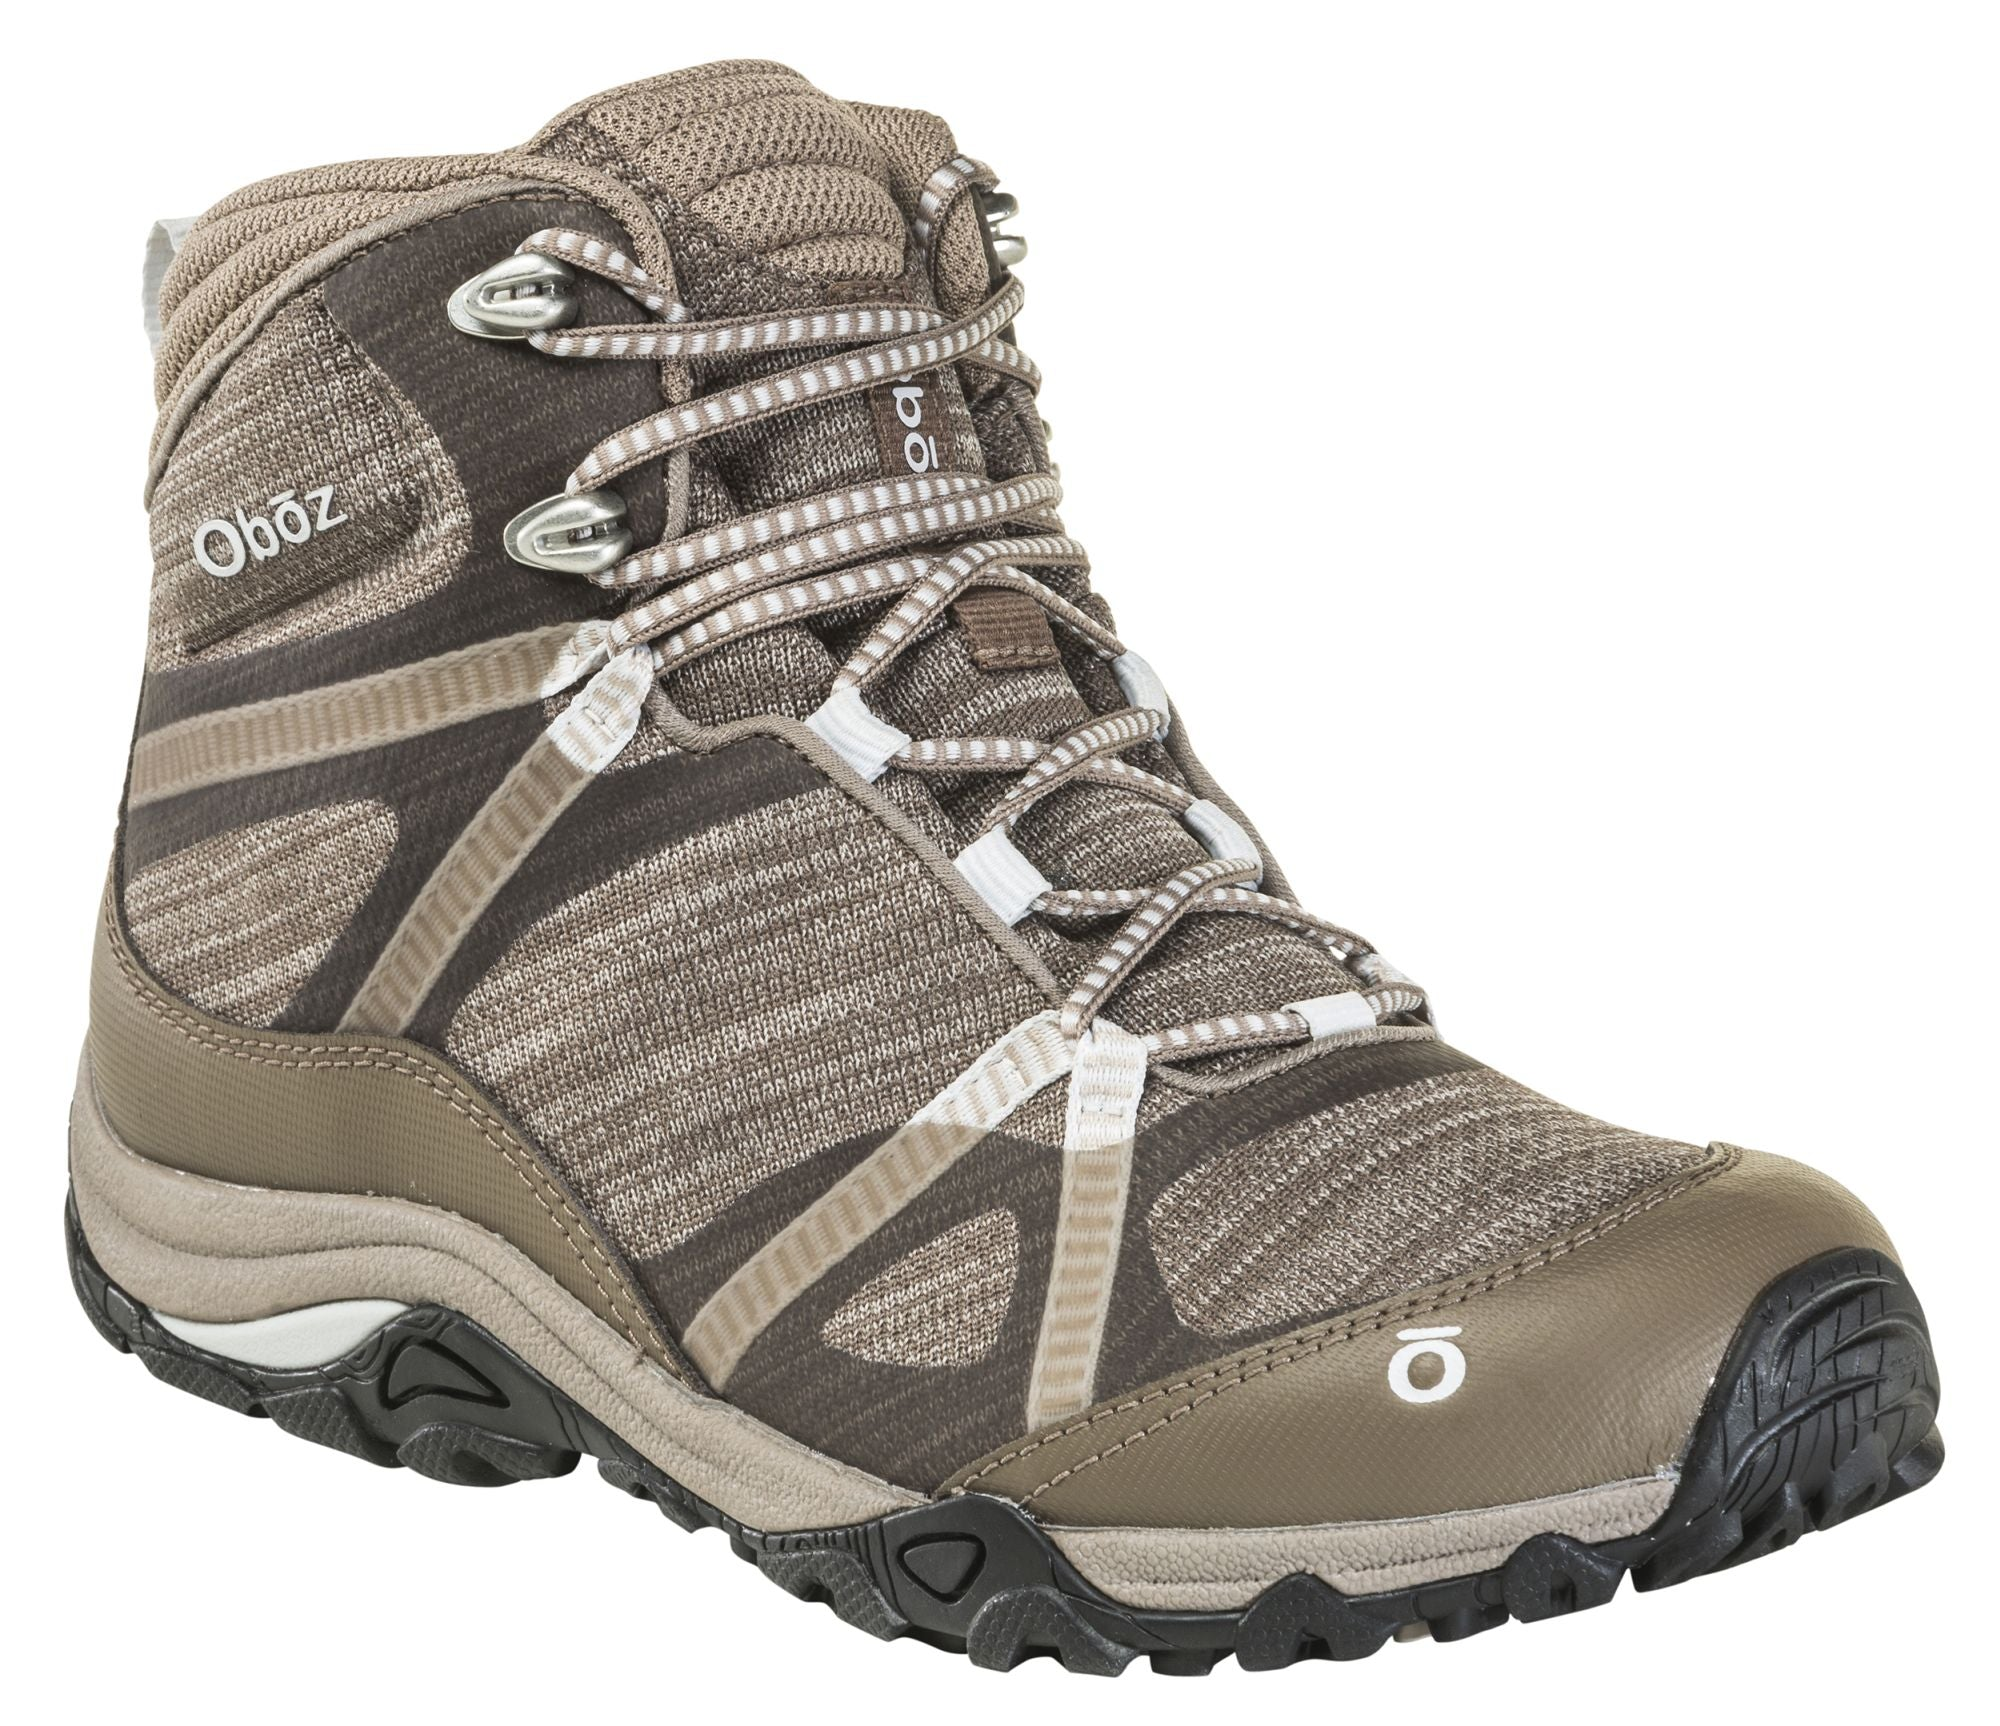 850a652d400 Oboz Lynx Mid B-DRY Hiking Boot - Women's